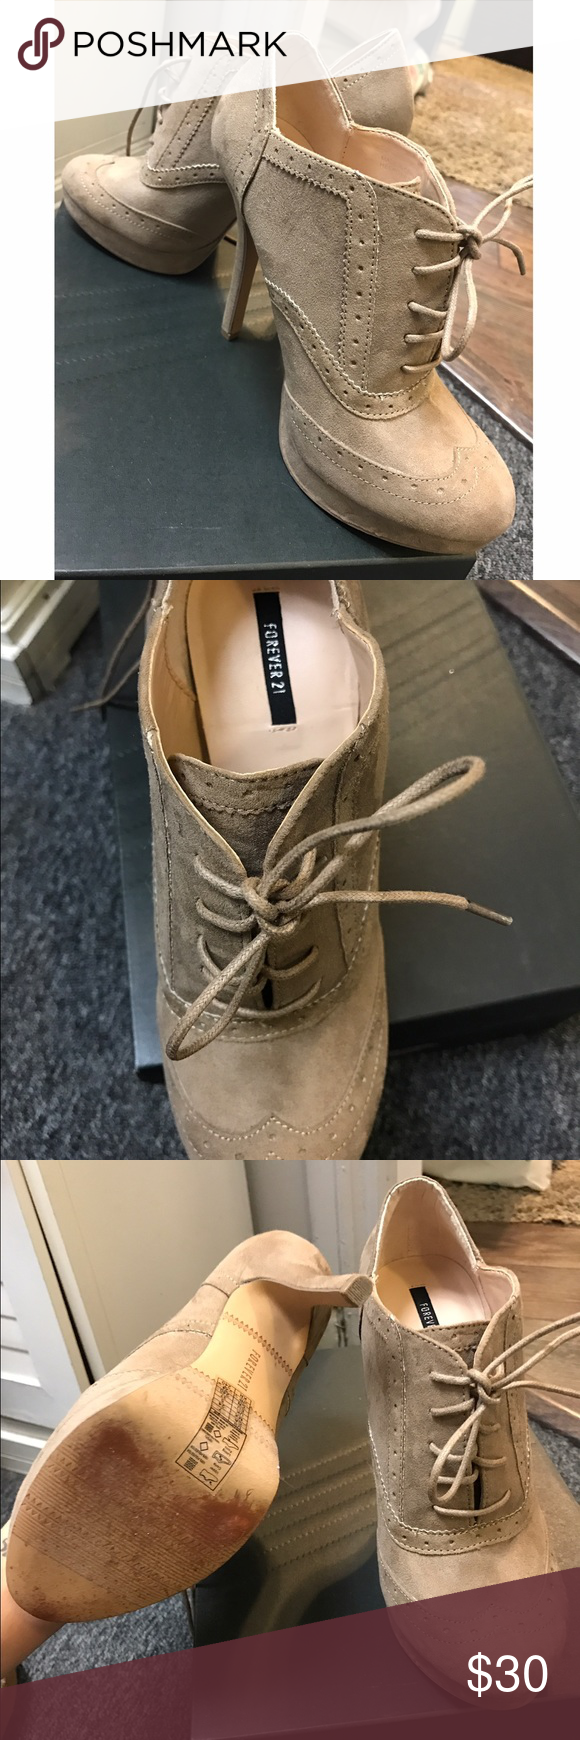 Beige pumps Excellent condition, worn once for a few hours. The only sign of wear is on the bottom of the shoe from walking. Forever 21 Shoes Heels